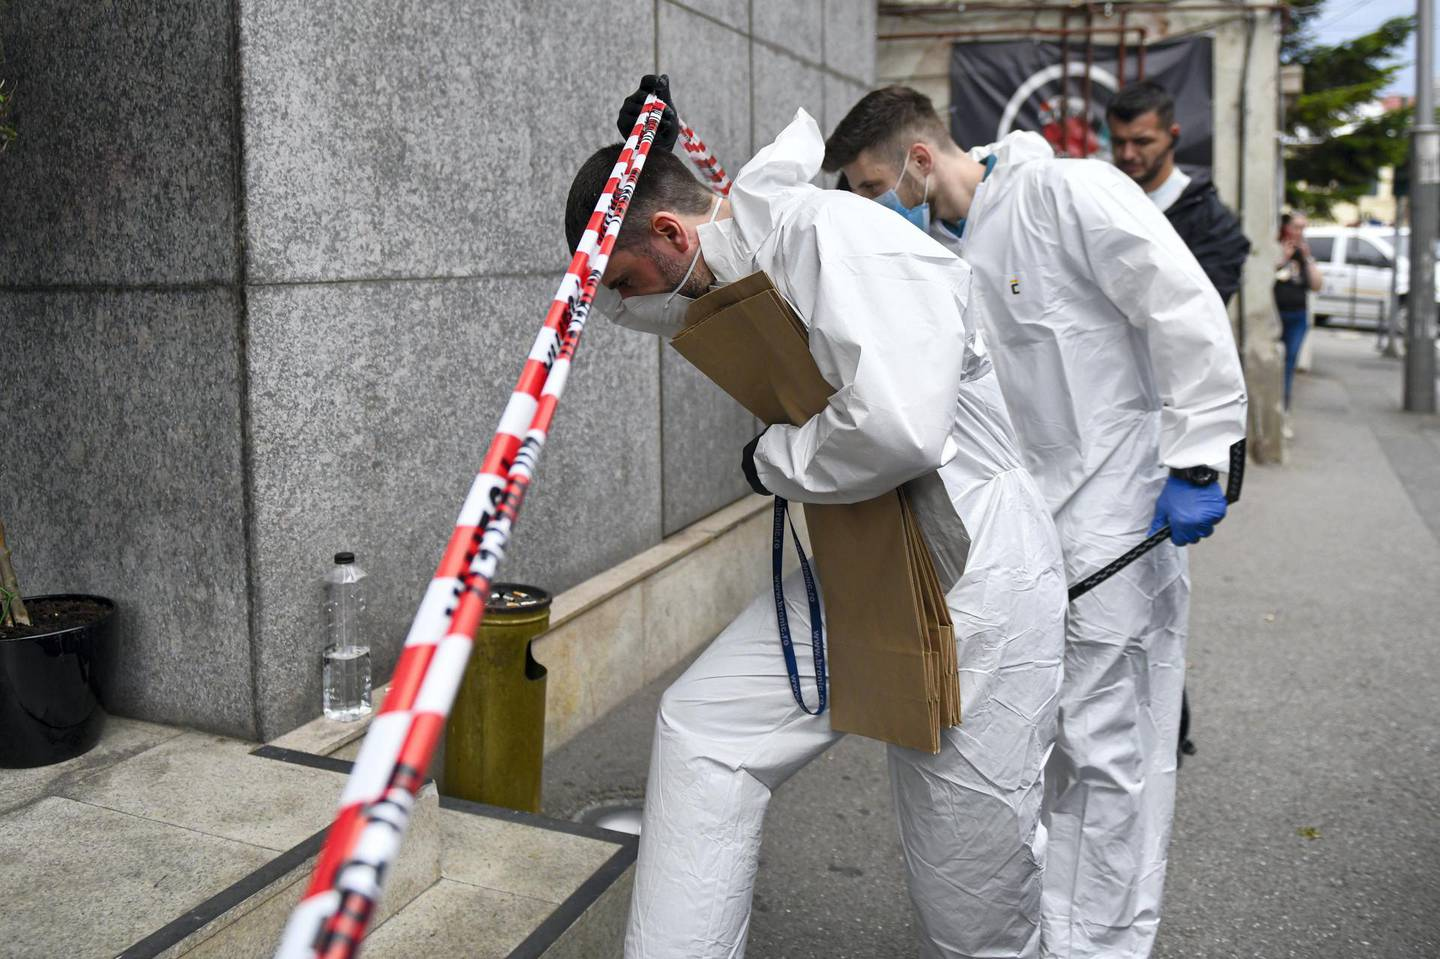 Forensic workers arrive to collect body parts and evidence from a hotel downtown Bucharest, Romania, Friday, June 19, 2020. Gholamreza Mansouri, a former judge from Iran sought by his country to face corruption charges has died after falling from a high floor inside a hotel. Romanian police said only that a man had fallen from a high floor at a hotel in Bucharest, the Romanian capital, and was found dead. (AP Photo/Andreea Alexandru)